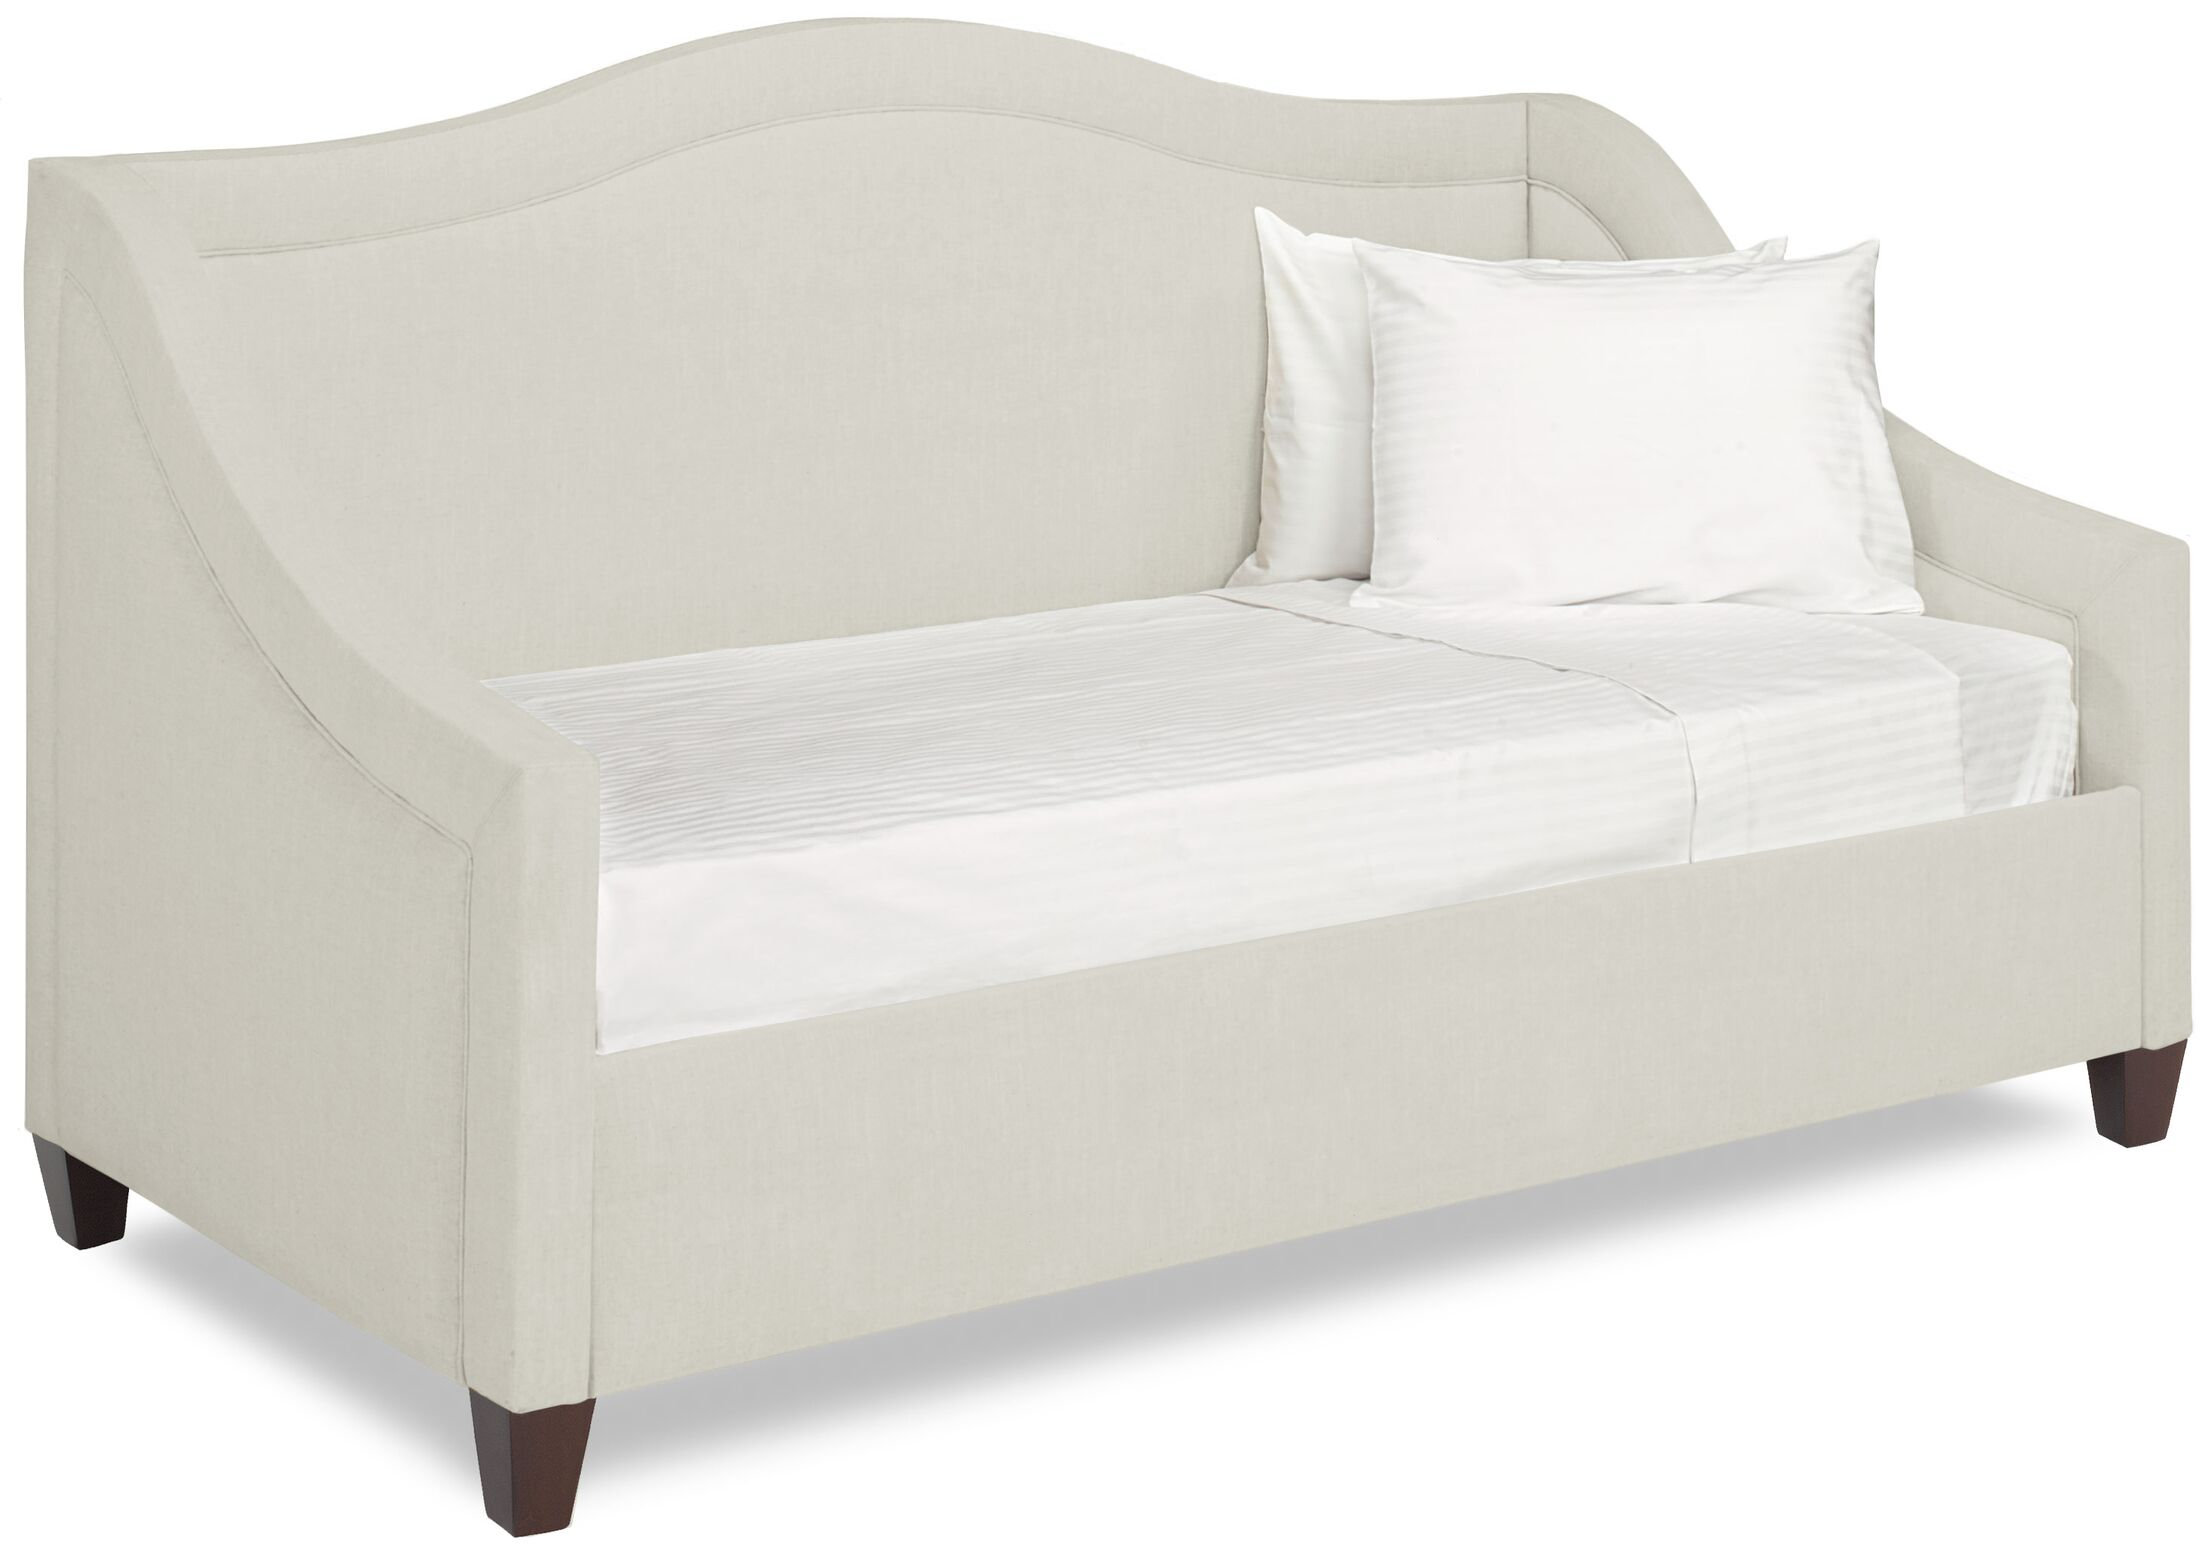 Dreamtime Daybed with Mattress Size: Twin, Color: Cream